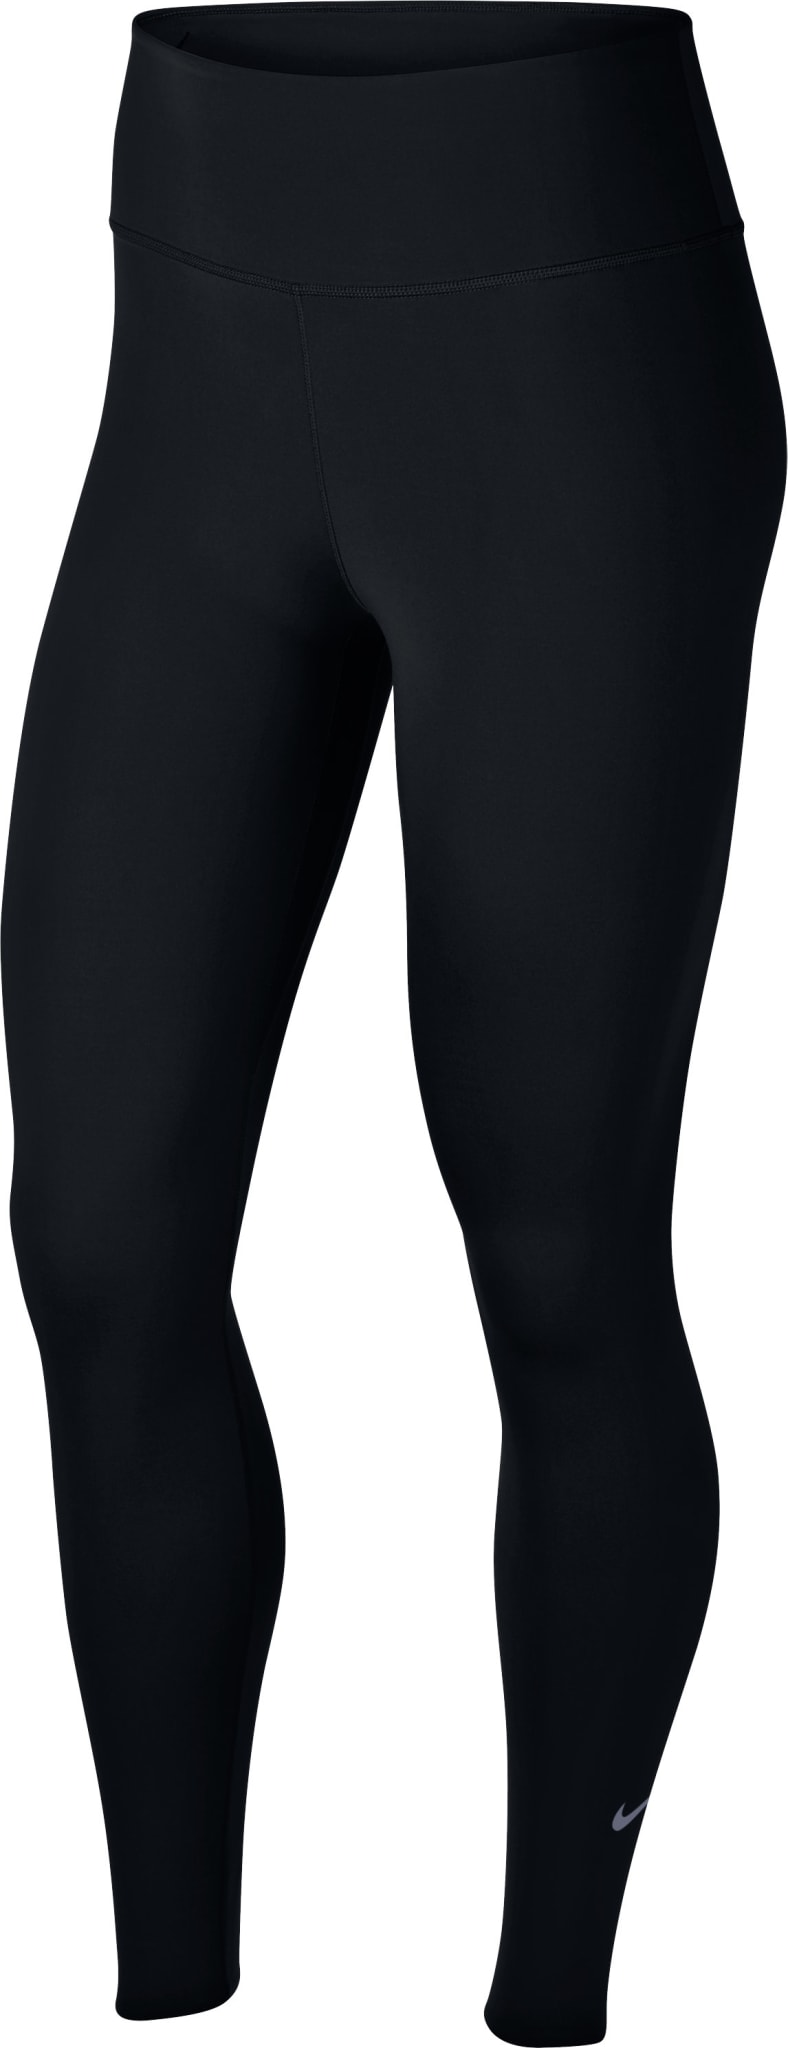 ae3a87ed All-In Training Tights W